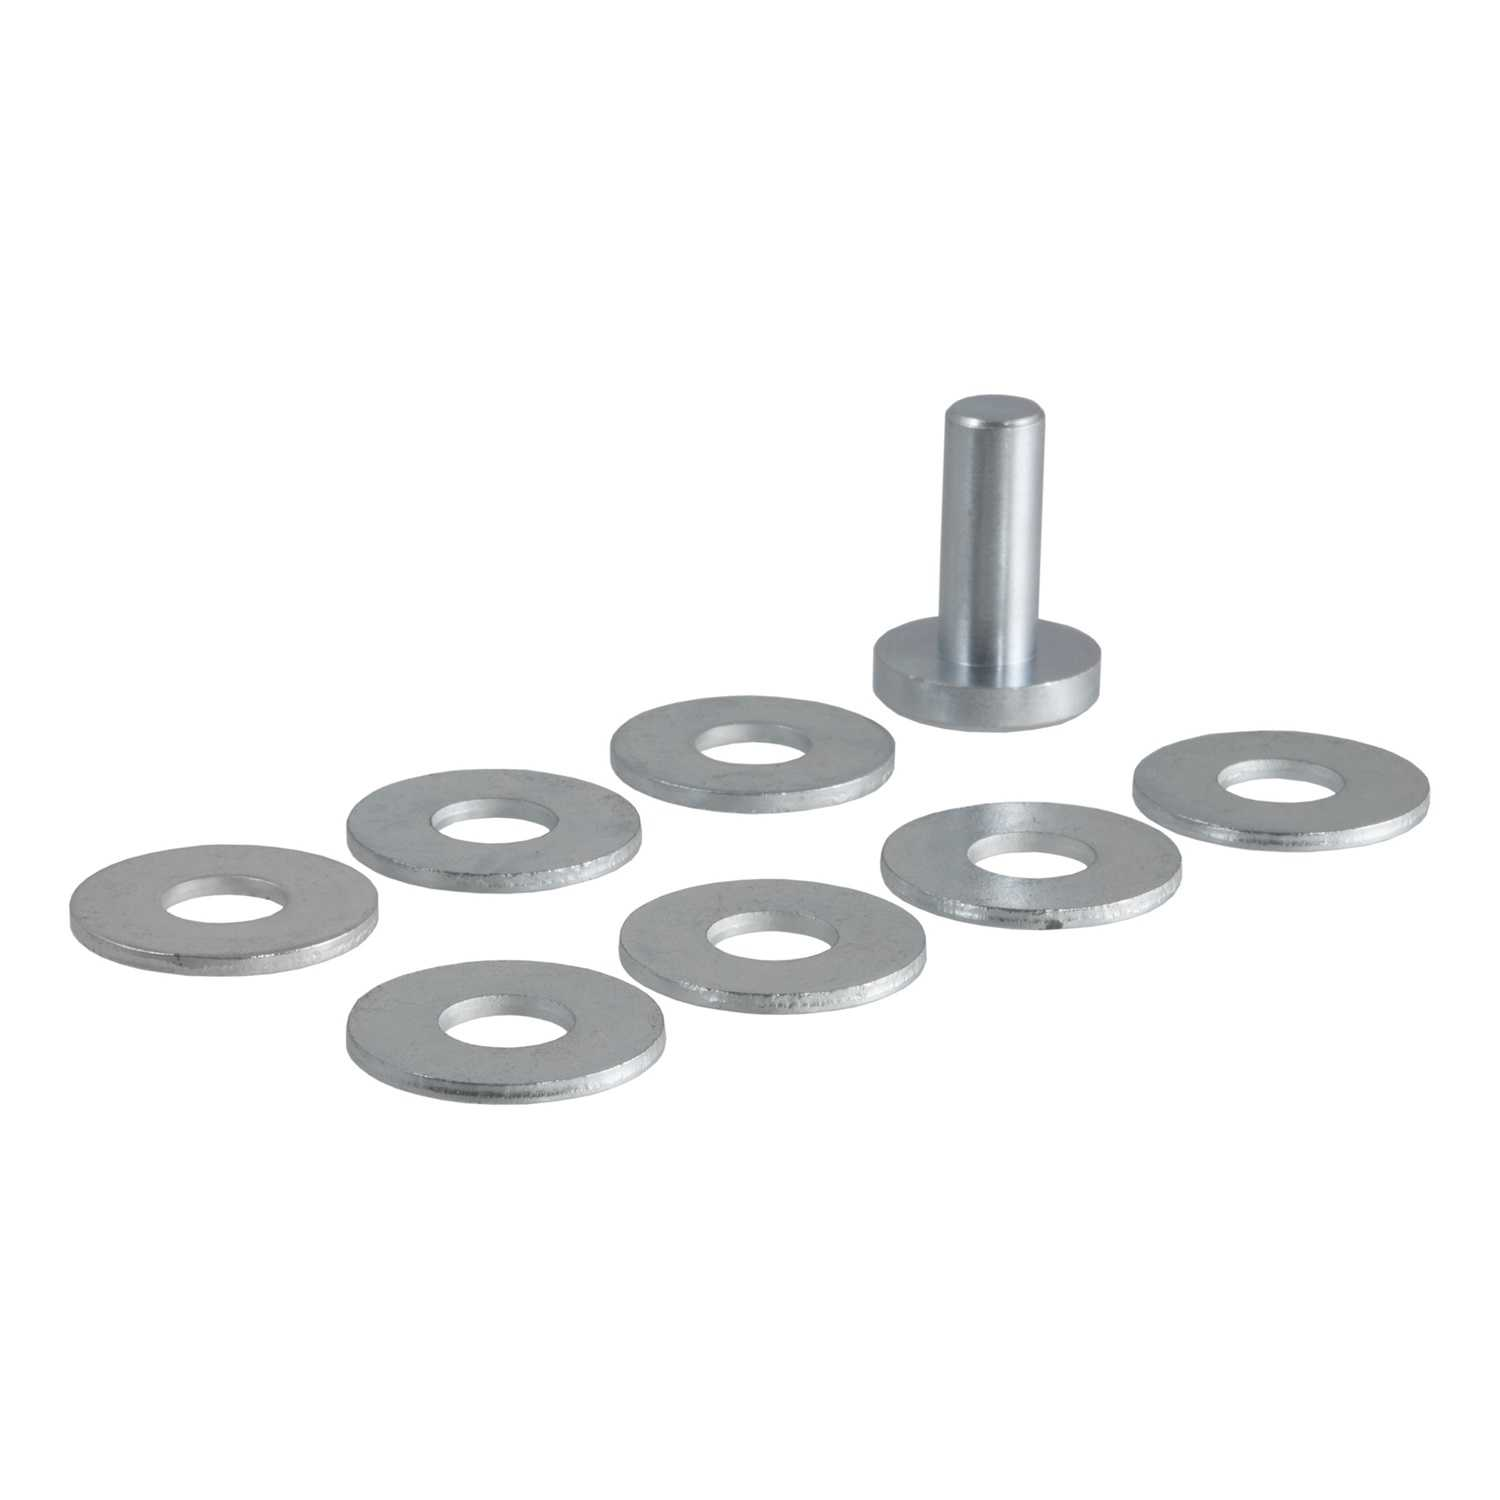 Curt Manufacturing Cur17114 Replacement 1' Rivet